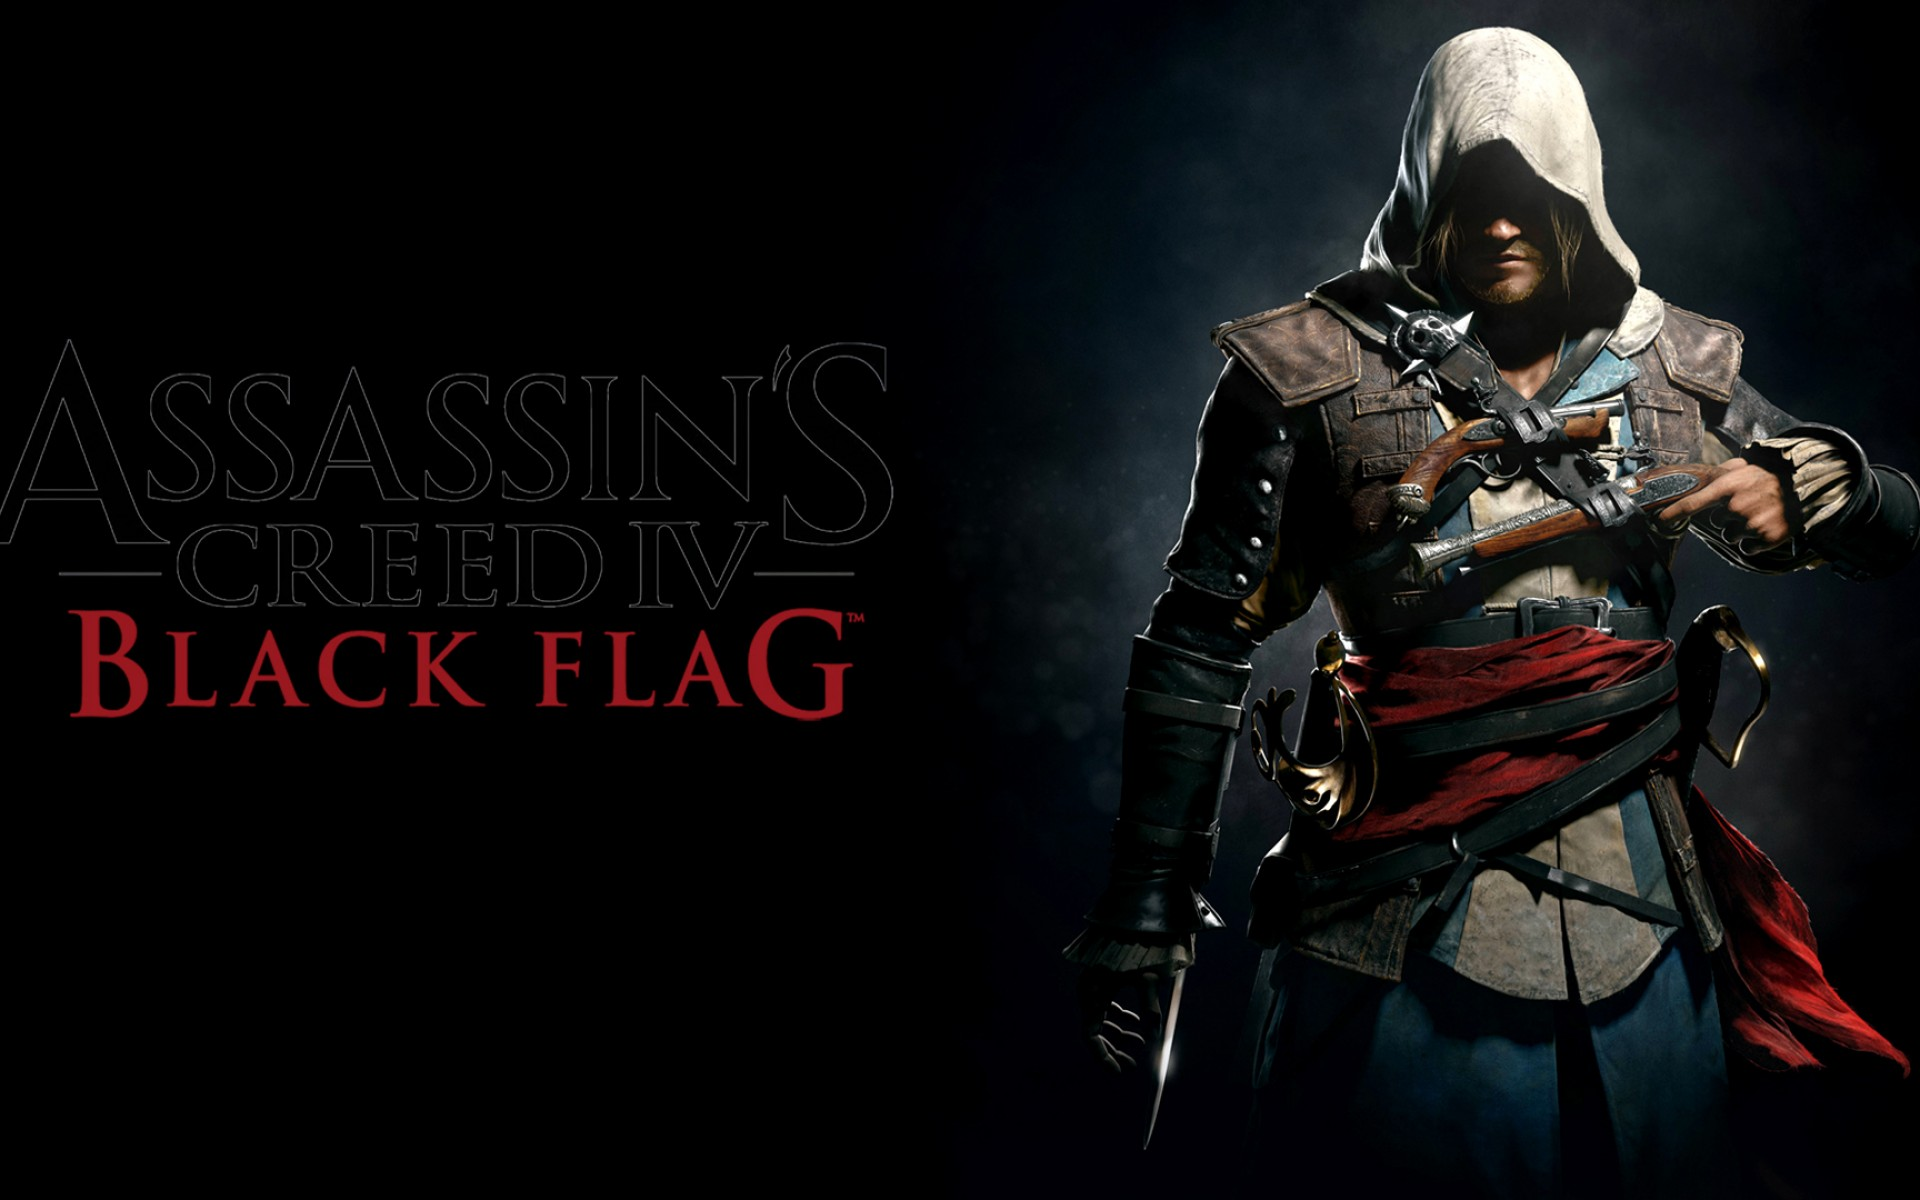 Download The Assassin S Creed Iv Black Flag Wallpapers: Assassin's Creed IV: Black Flag Computer Wallpapers